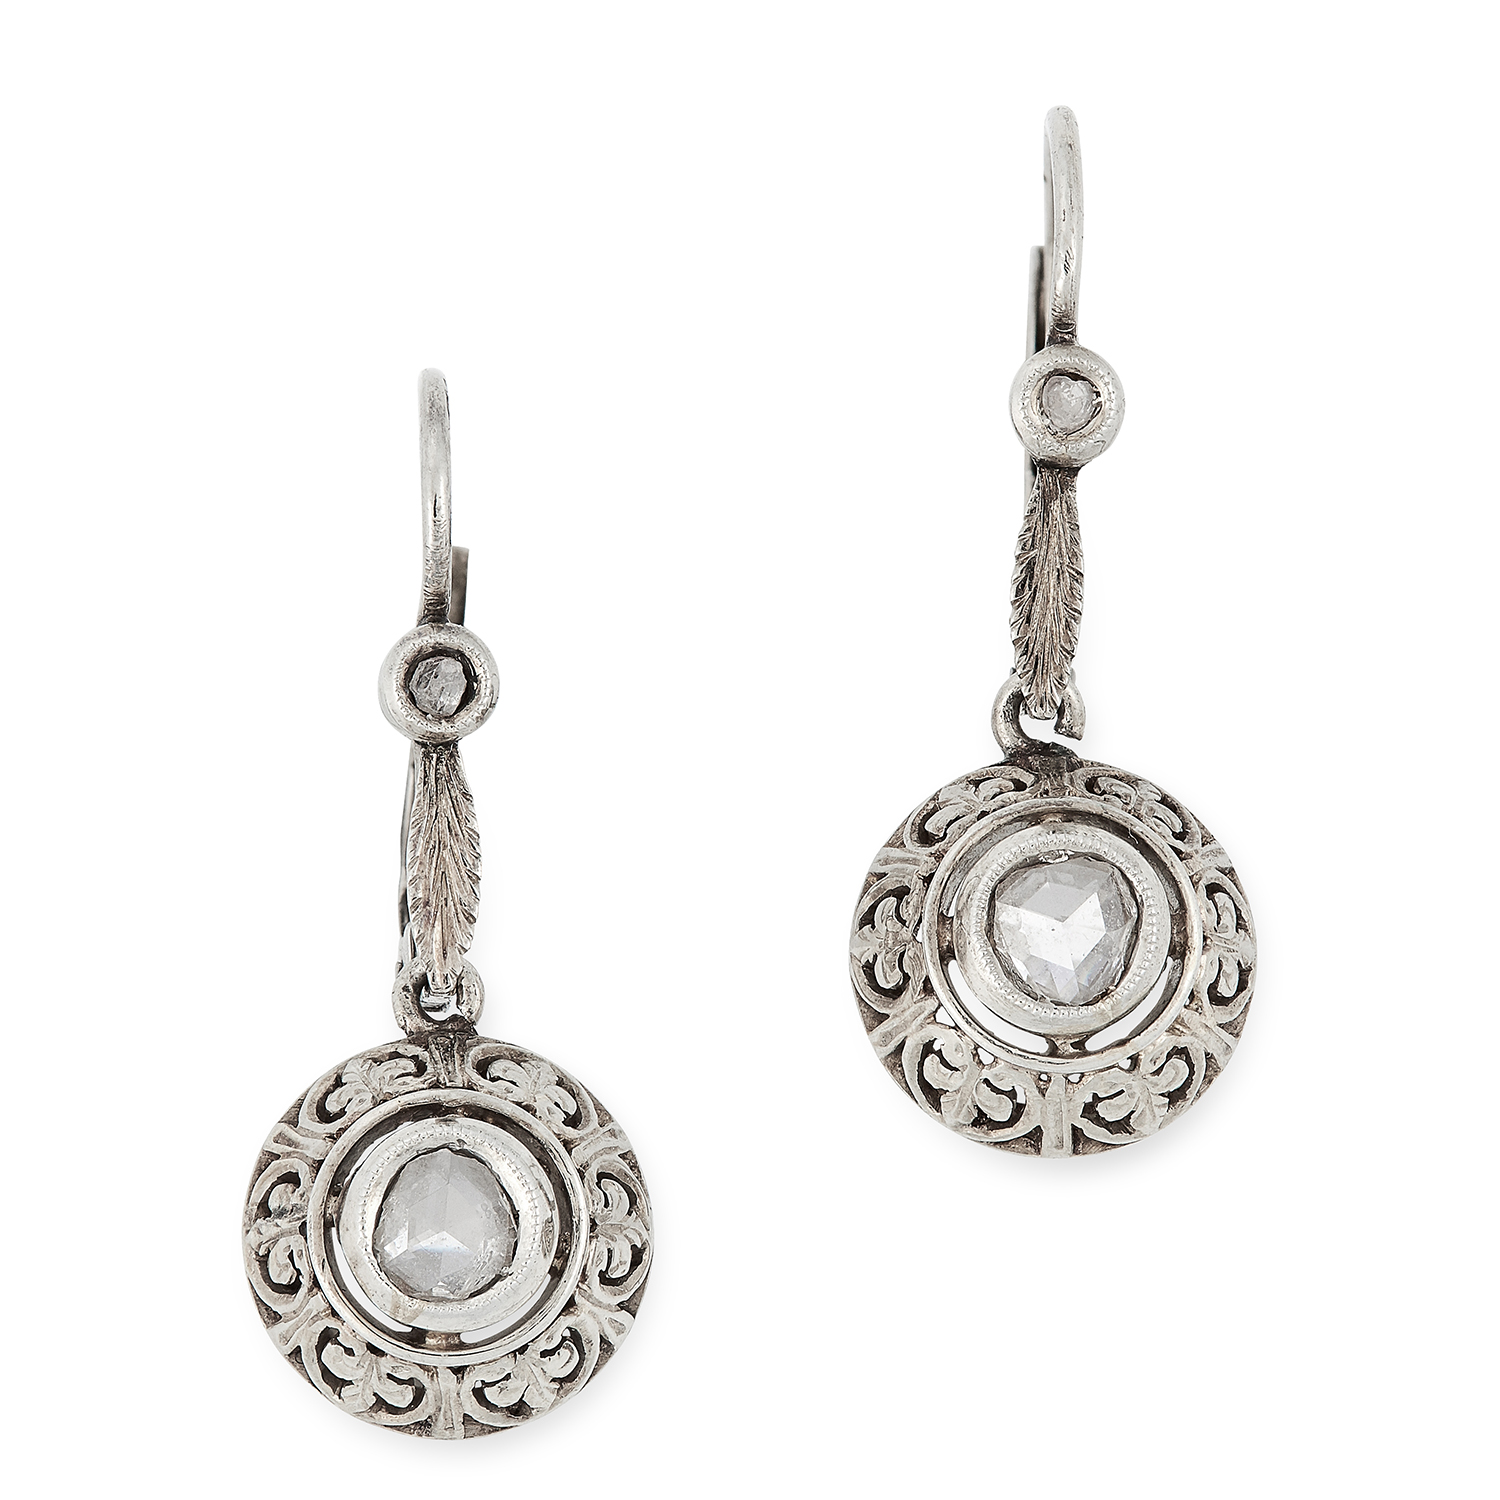 Los 46 - DIAMOND DROP EARRINGS each set with a rose cut diamond surrounded by floral motifs, below a